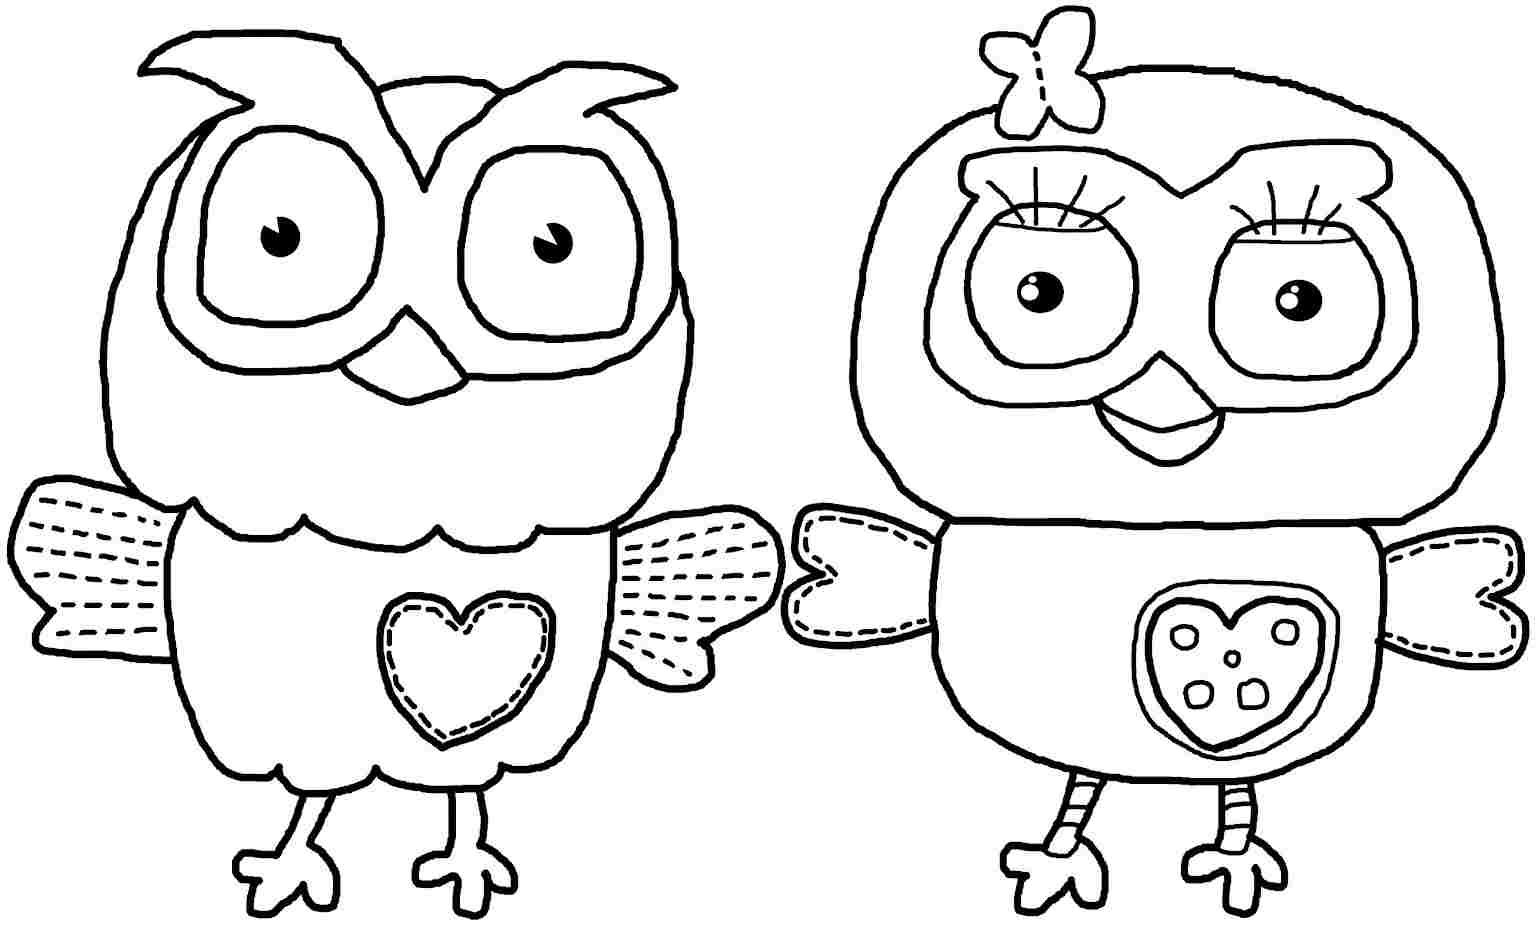 Owl Coloring Pages Printable Free Online For Adults Teenagers Kids Sheets